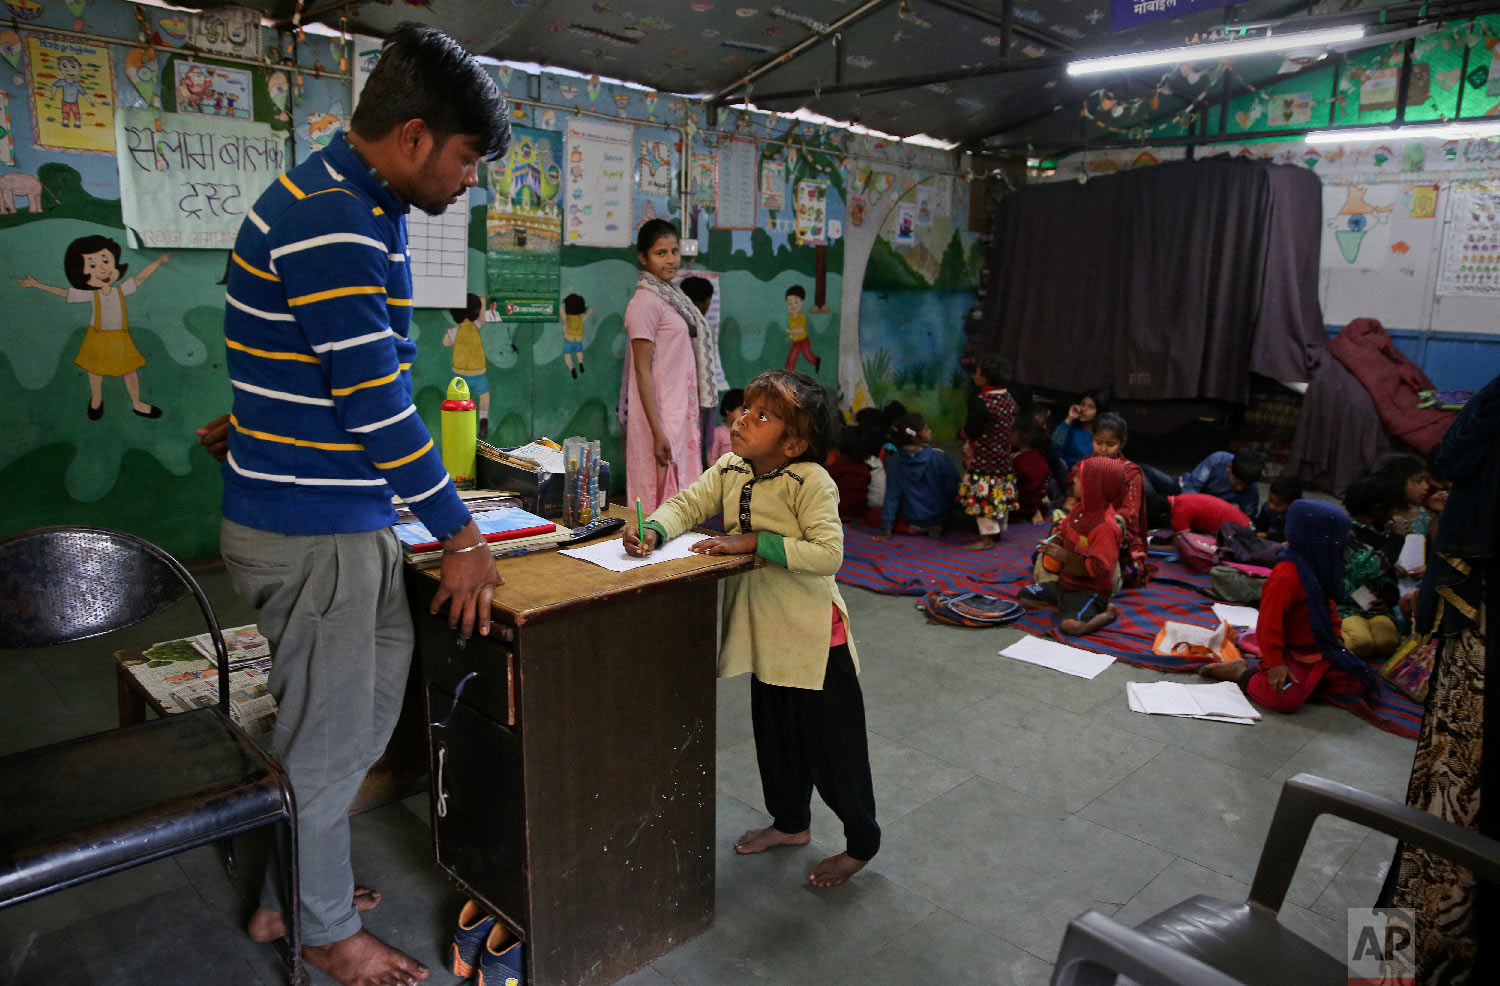 7-year-old Farmaan studies at Salaam Baalak Trust, an NGO working for street children, in New Delhi, India, on In this Jan. 24, 2019. (AP Photo/Altaf Qadri)